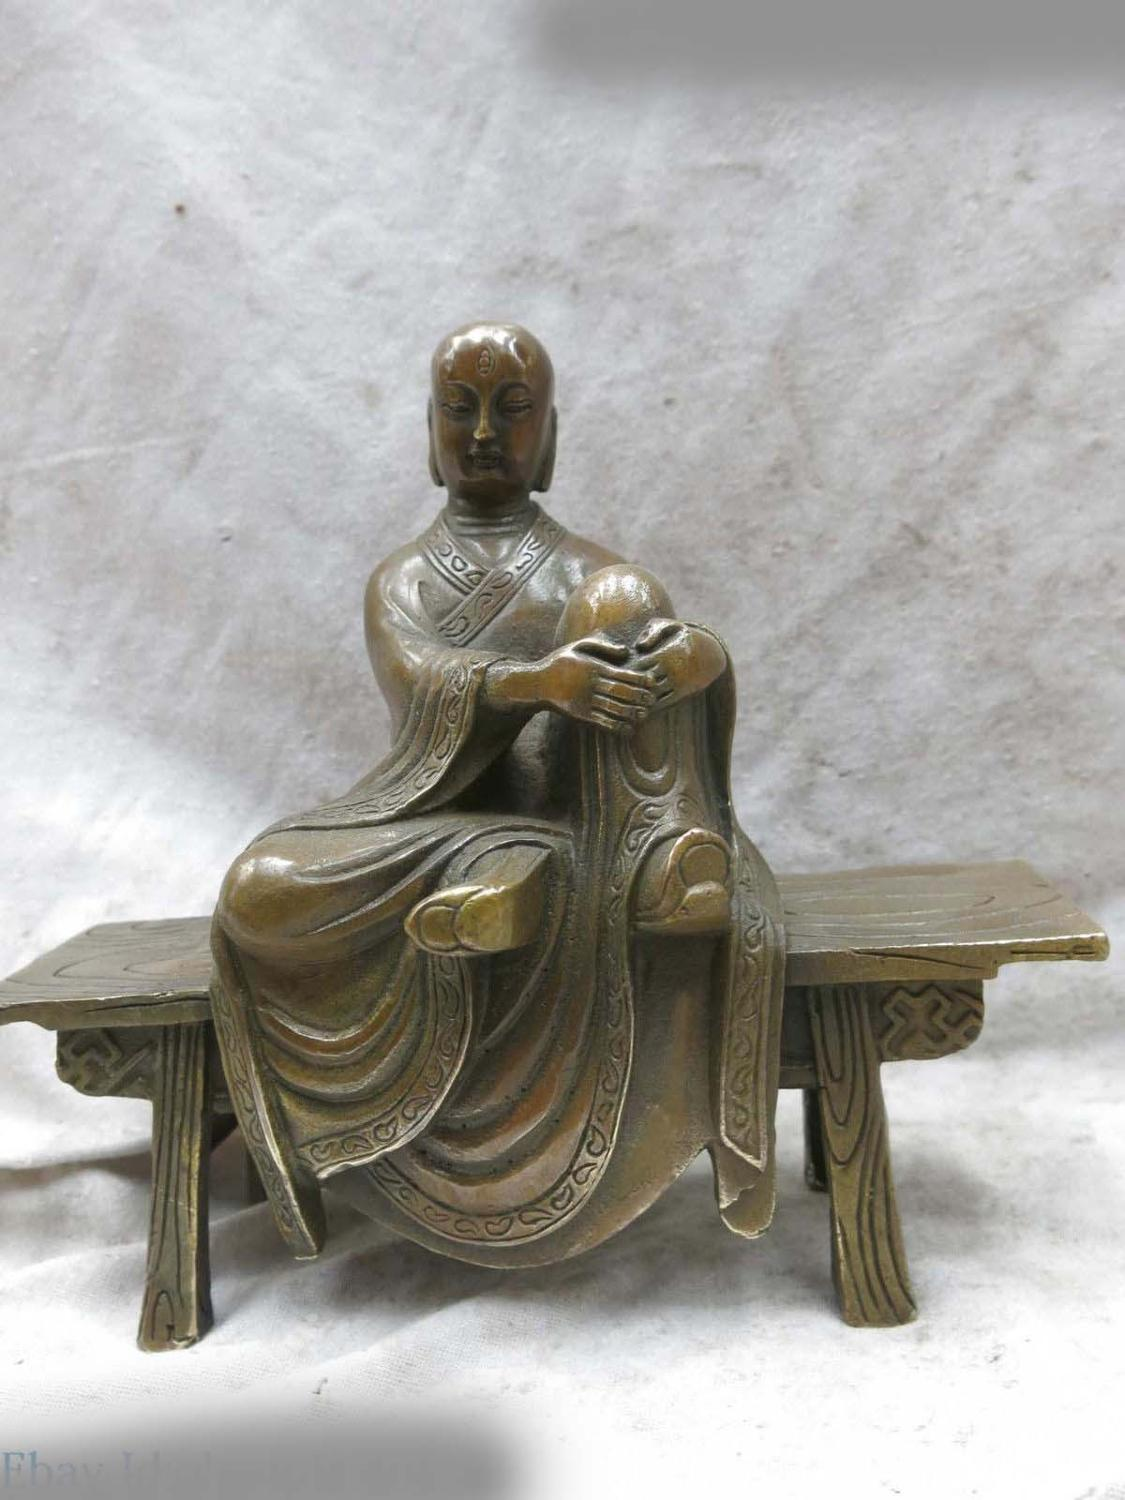 DS Brass Sculpture China Carved Fine Copper Buddhism Buddha Wooden Bench Statue